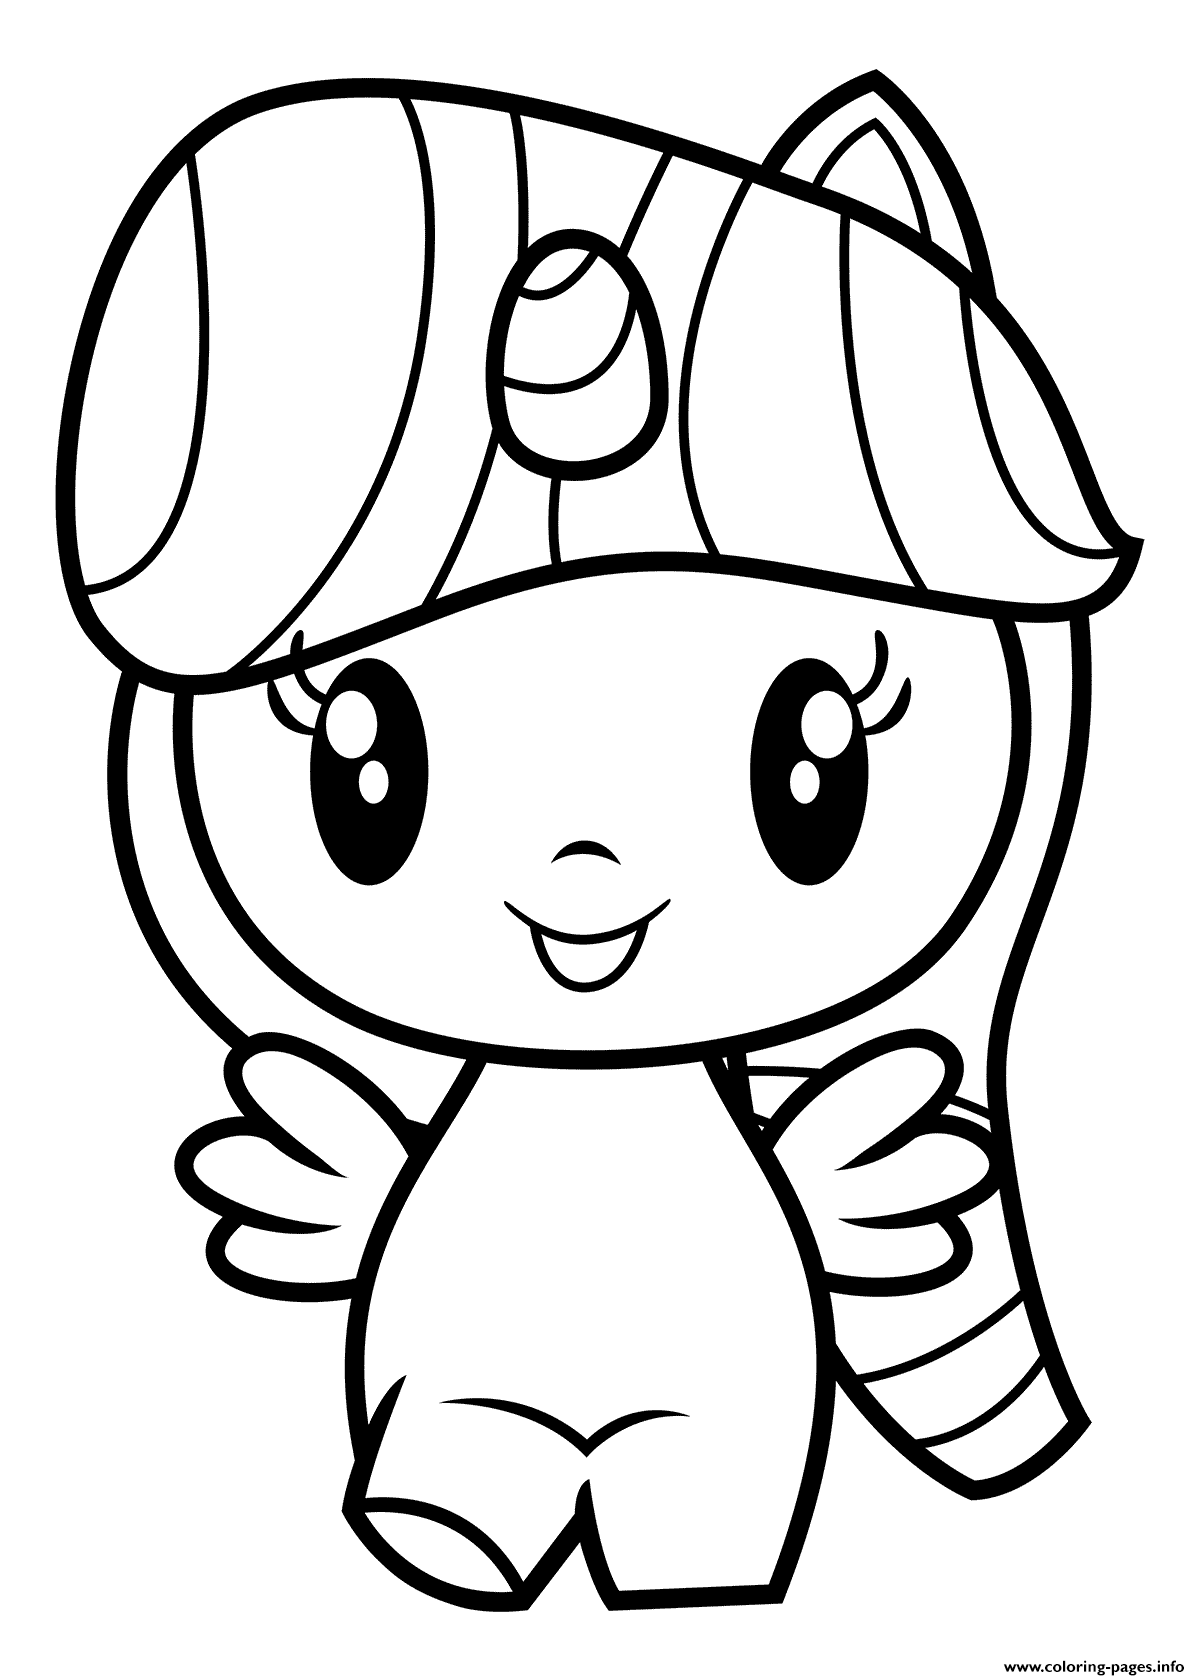 Twilight Sparkle Coloring Pages Printable